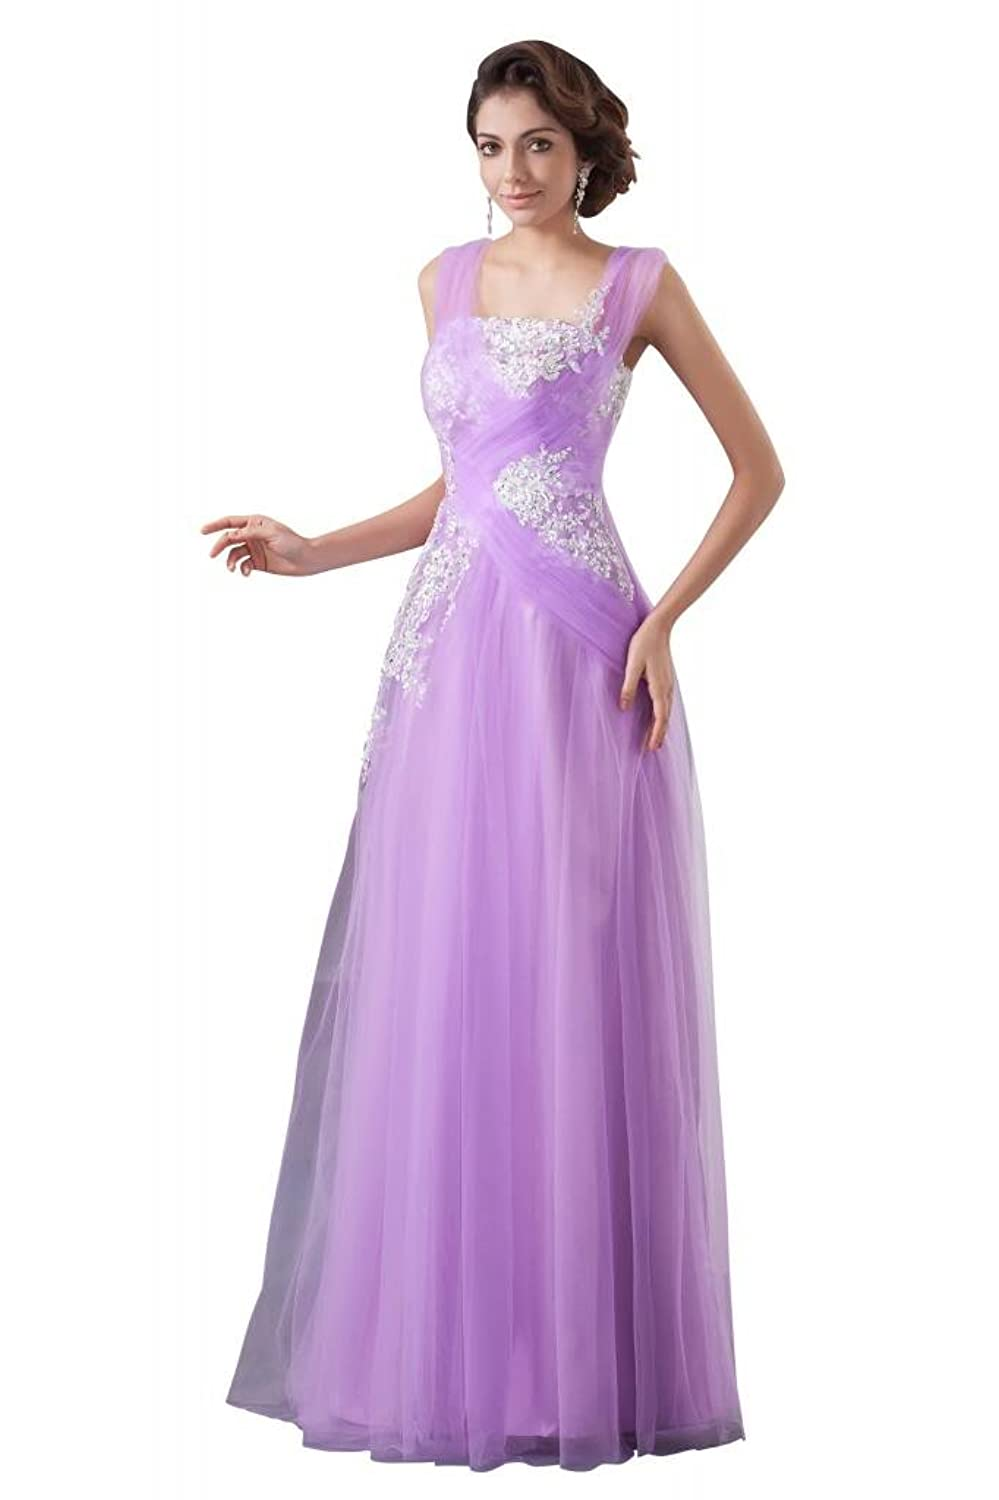 GEORGE BRIDE Simple Tulle Party Dress With Appliques